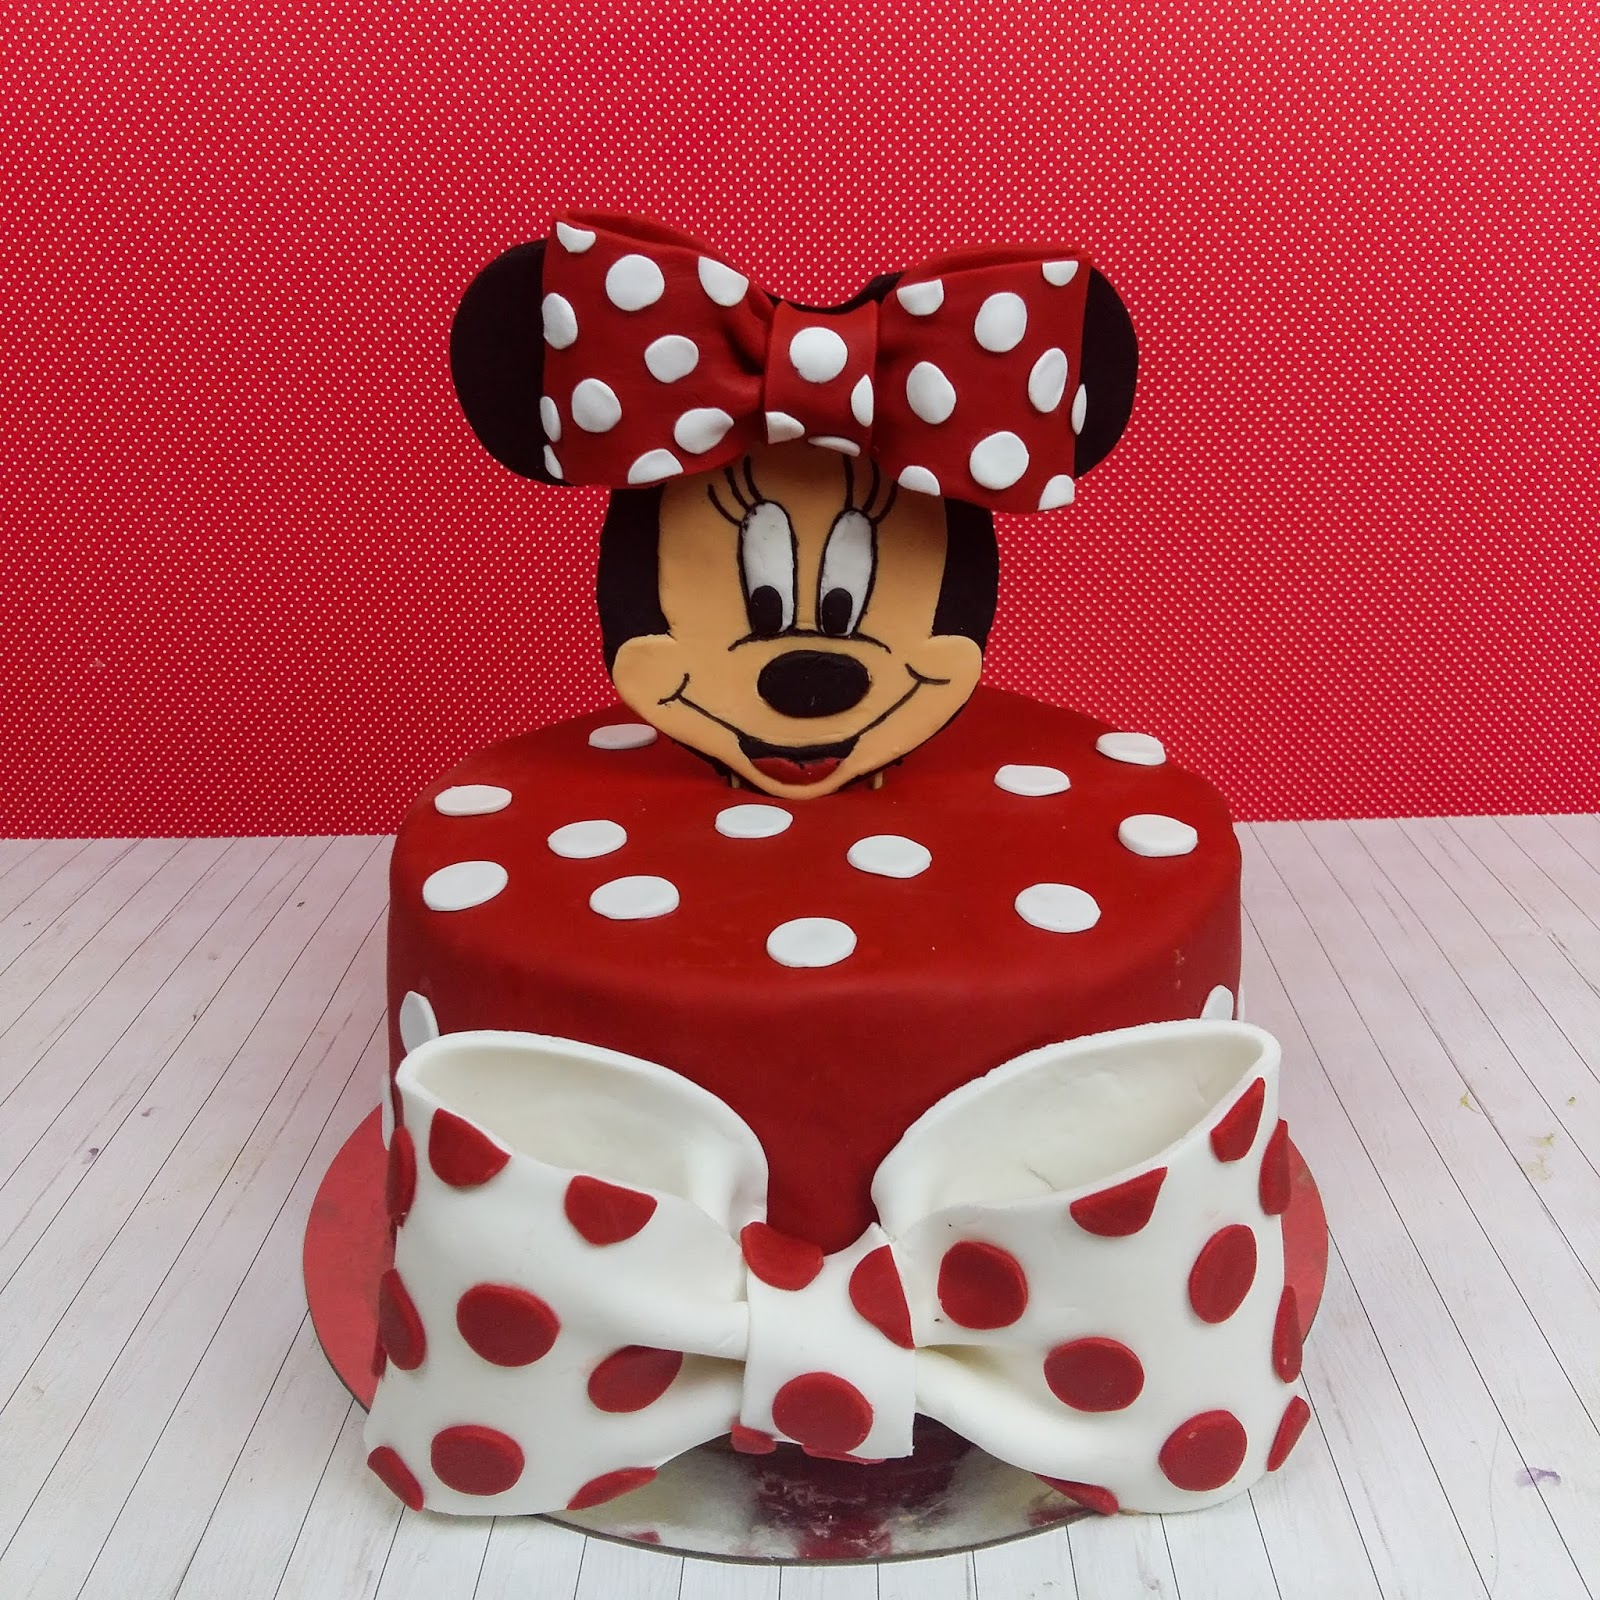 Minnie Maus Küche Kiras Bakery Minnie Mouse Torte Birthday Cake Motivtorte